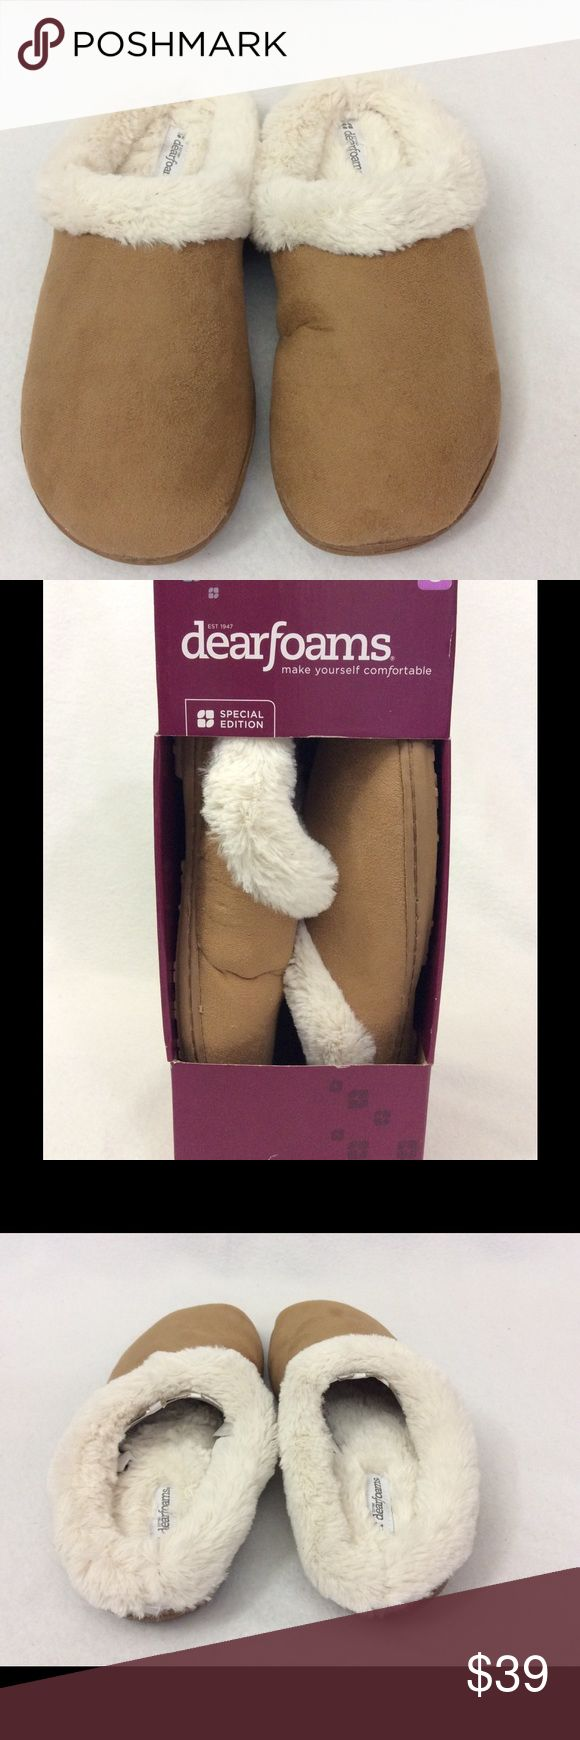 Dearfoams special edition memory foam slippers. Microfiber suede slippers with memory foam. Size 8. Color: camel. Dearfoams Shoes Slippers